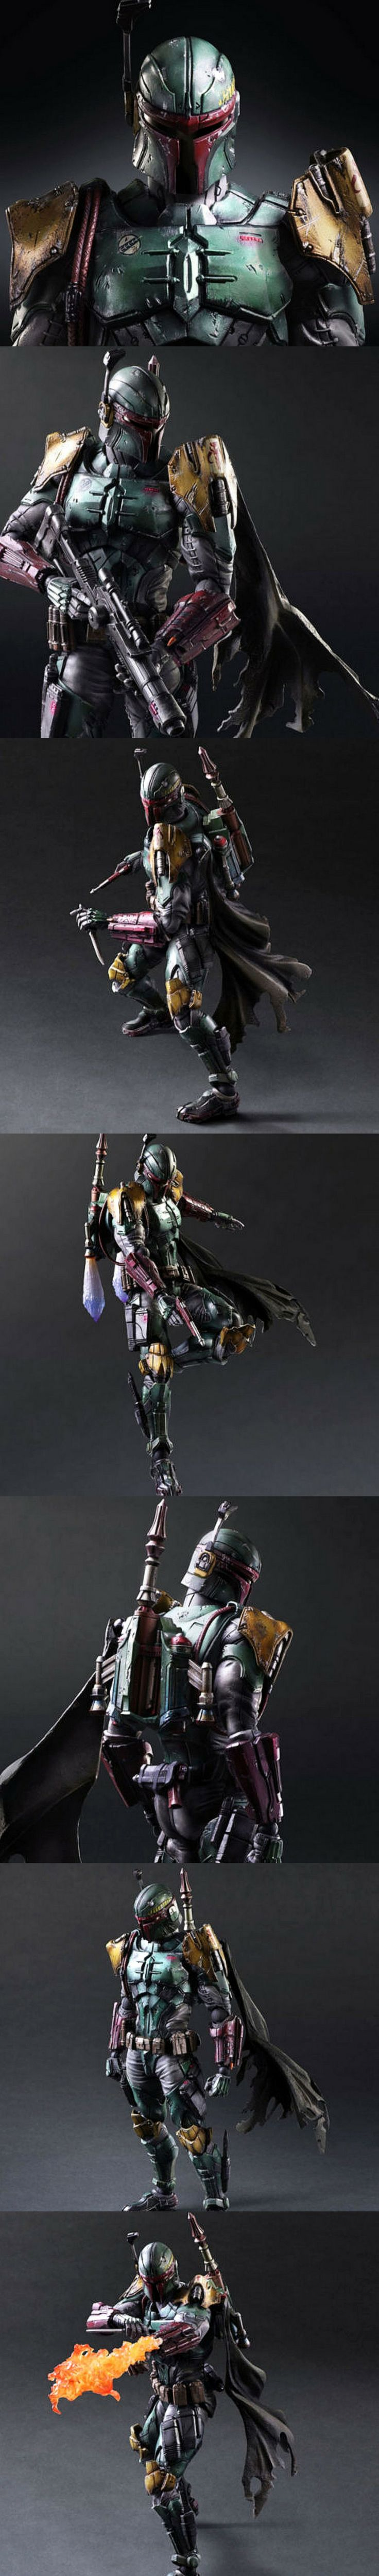 Star Wars The Force Awakens Boba Fett Figure #starwars #figure #bobafett